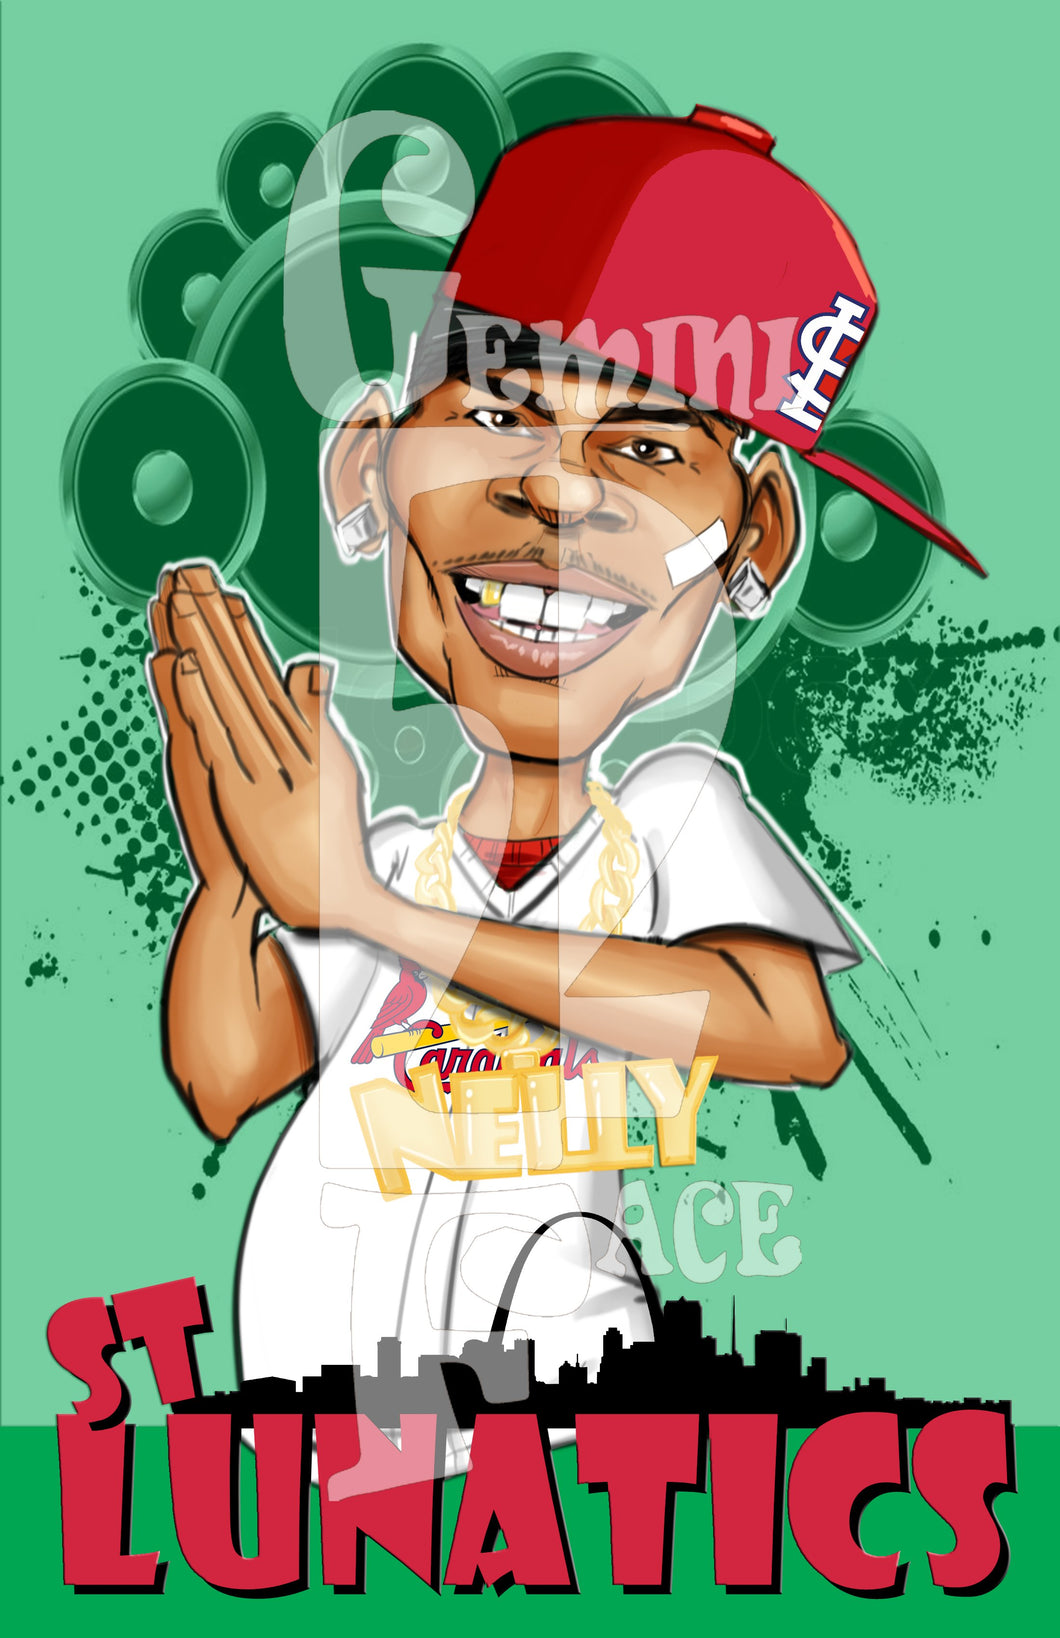 Nelly w/background (exclusive) PNG PNG File Gemini2face Art E-Store